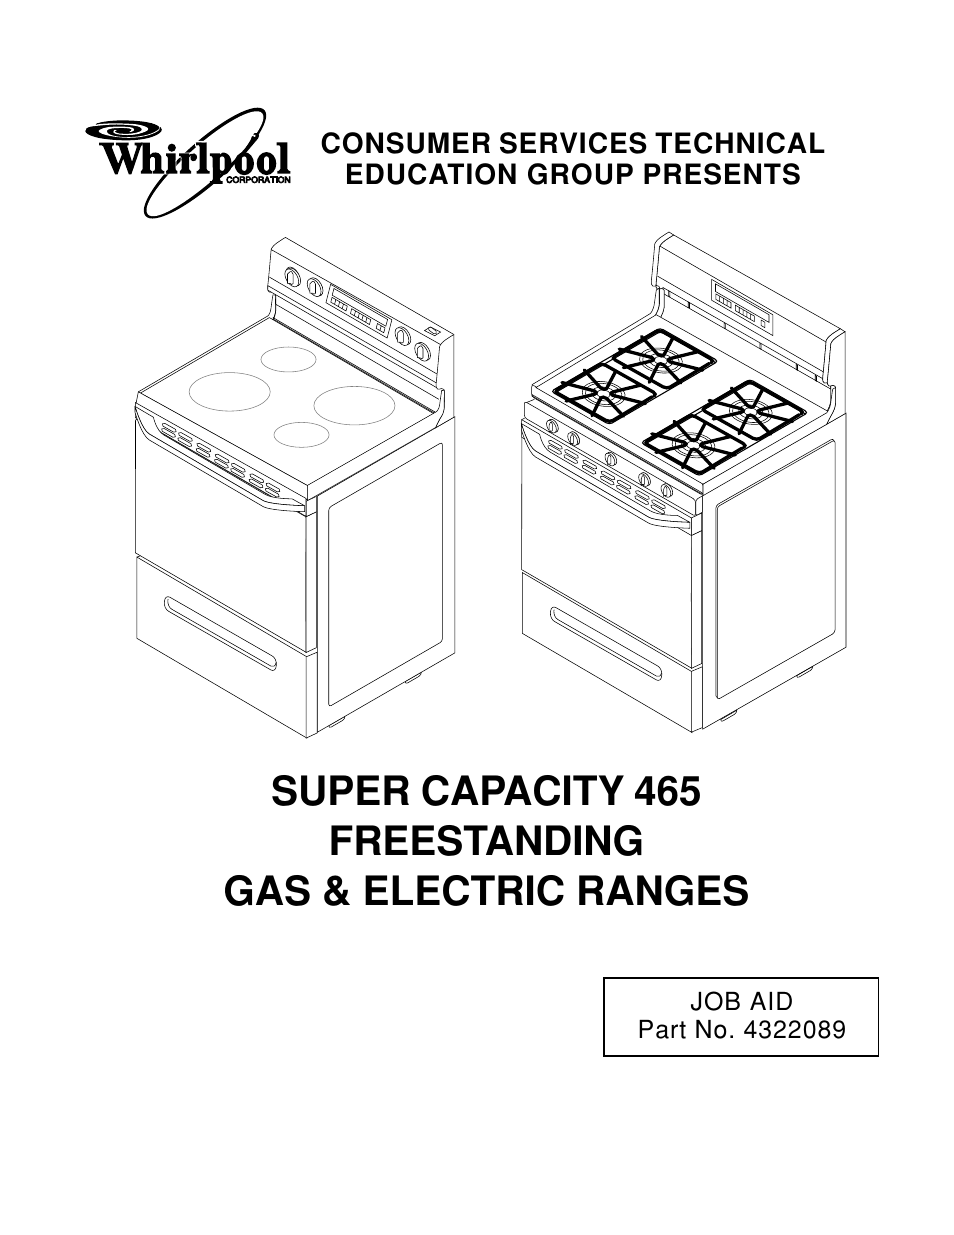 whirlpool 465 user manual 32 pages also for super capacity 465 rh manualsdir com Whirlpool Oven Parts Whirlpool Gas Range Parts